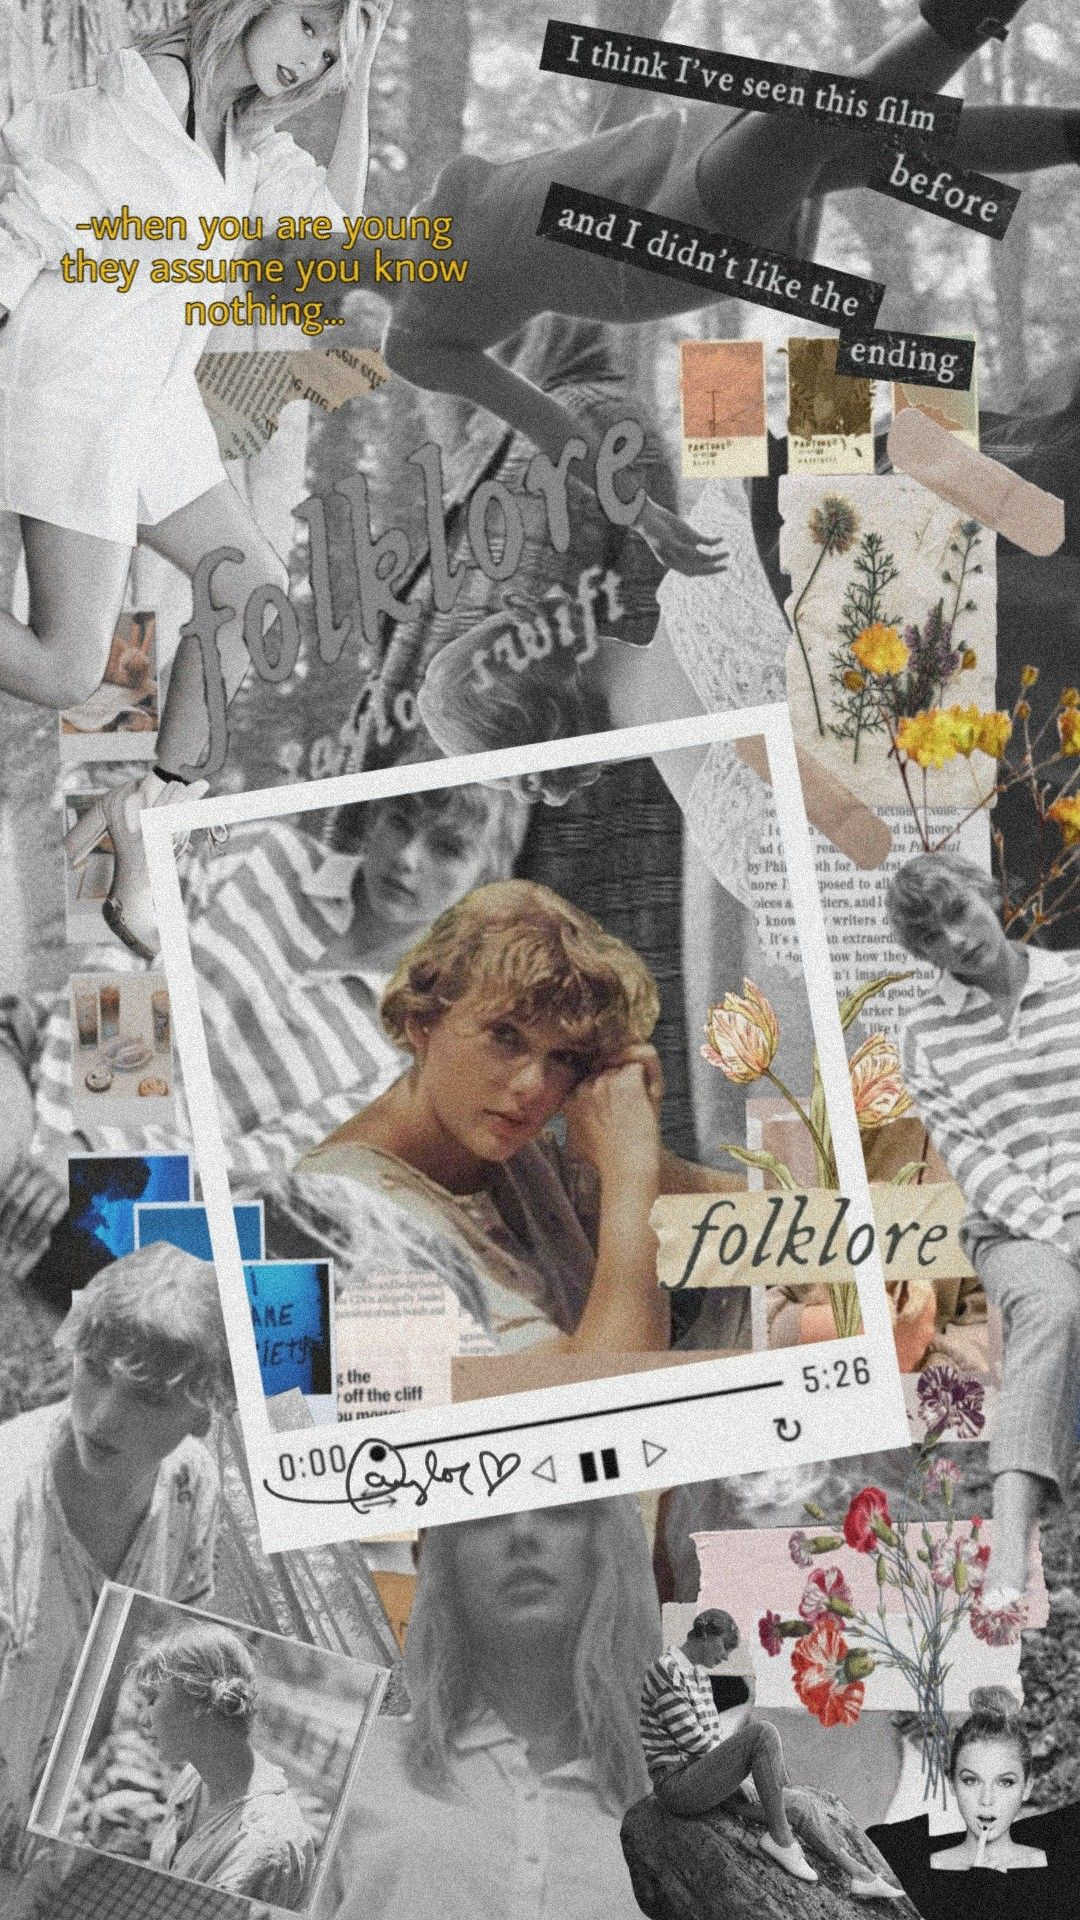 Taylor Swift Folklore Wallpaper In 2020 Taylor Swift Wallpaper Taylor Swift Moon Goddess Art